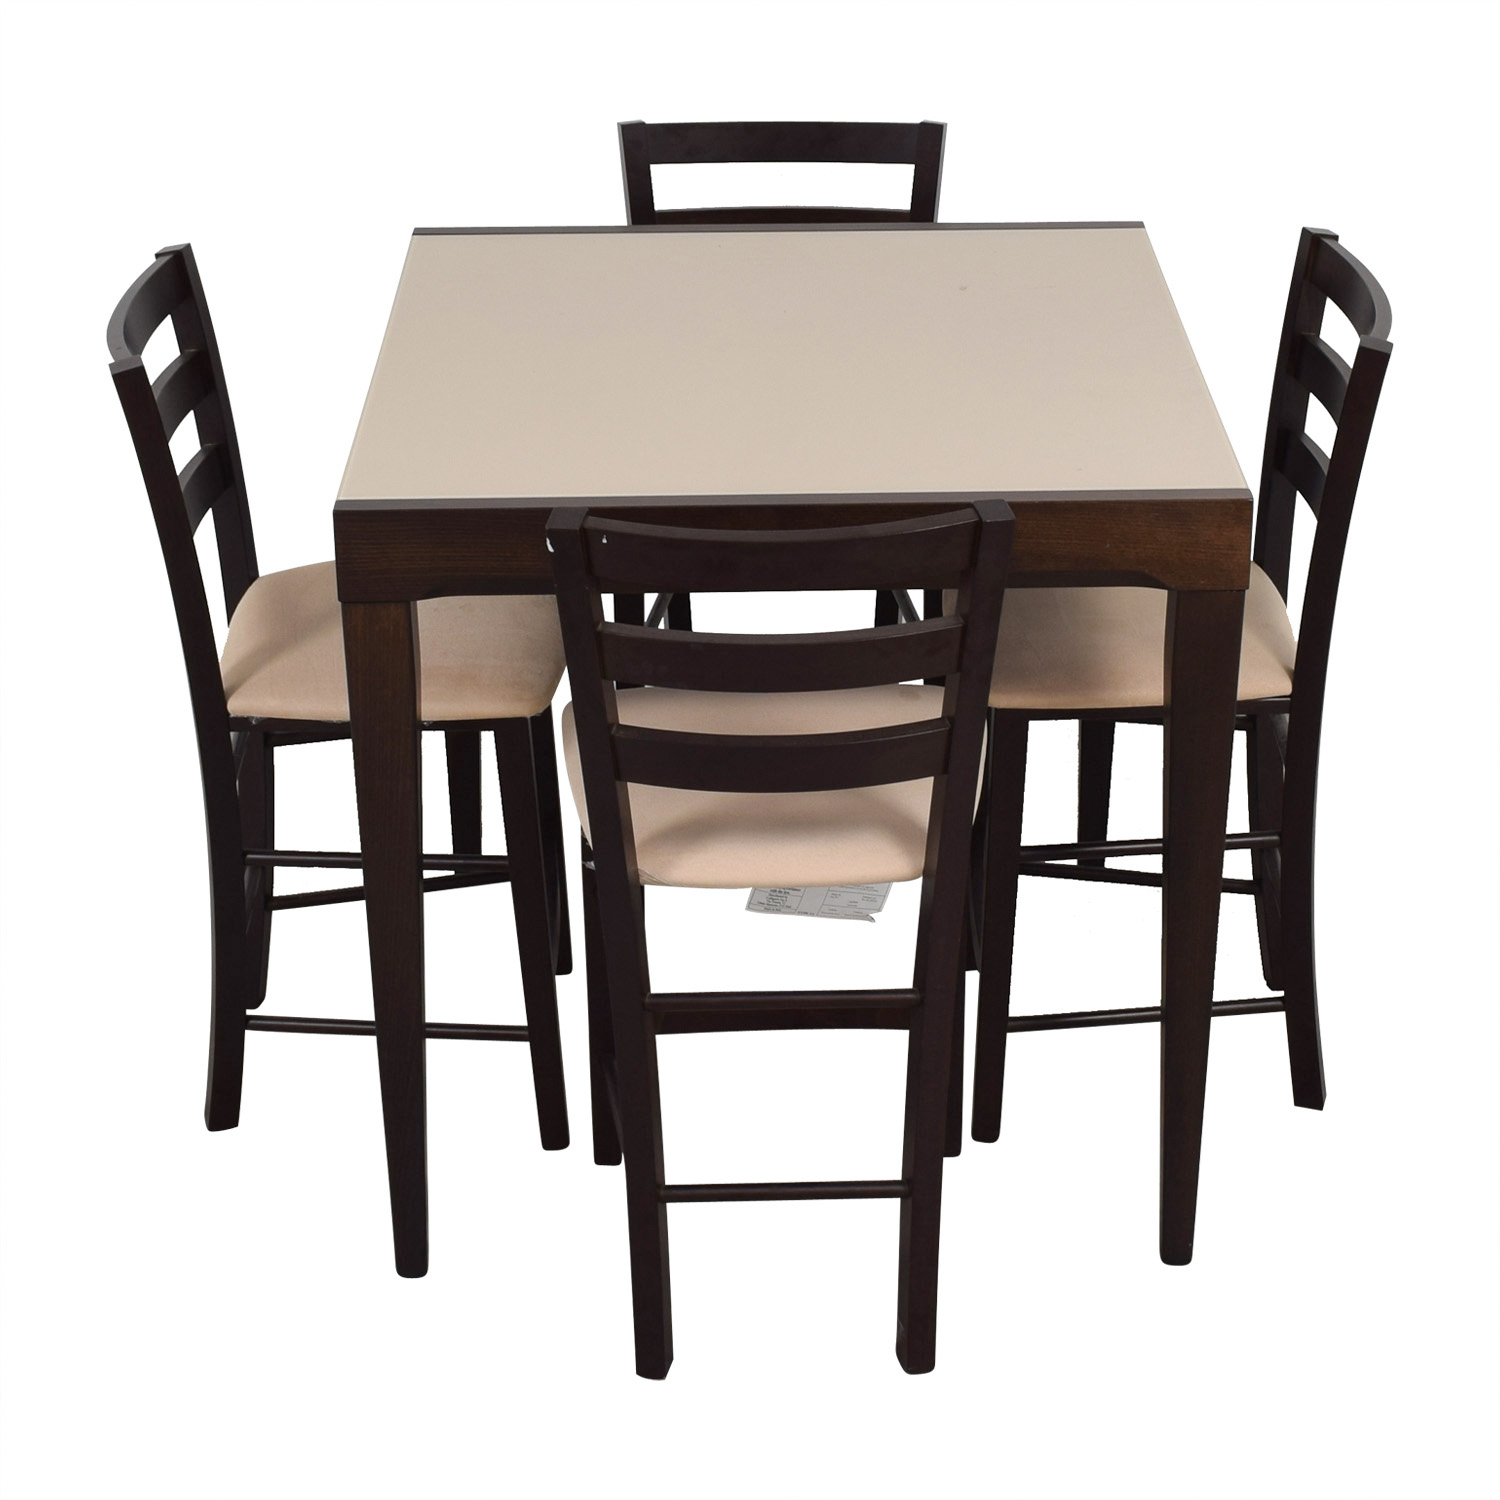 Calligaris Calligaris Extendable Dining Set dimensions